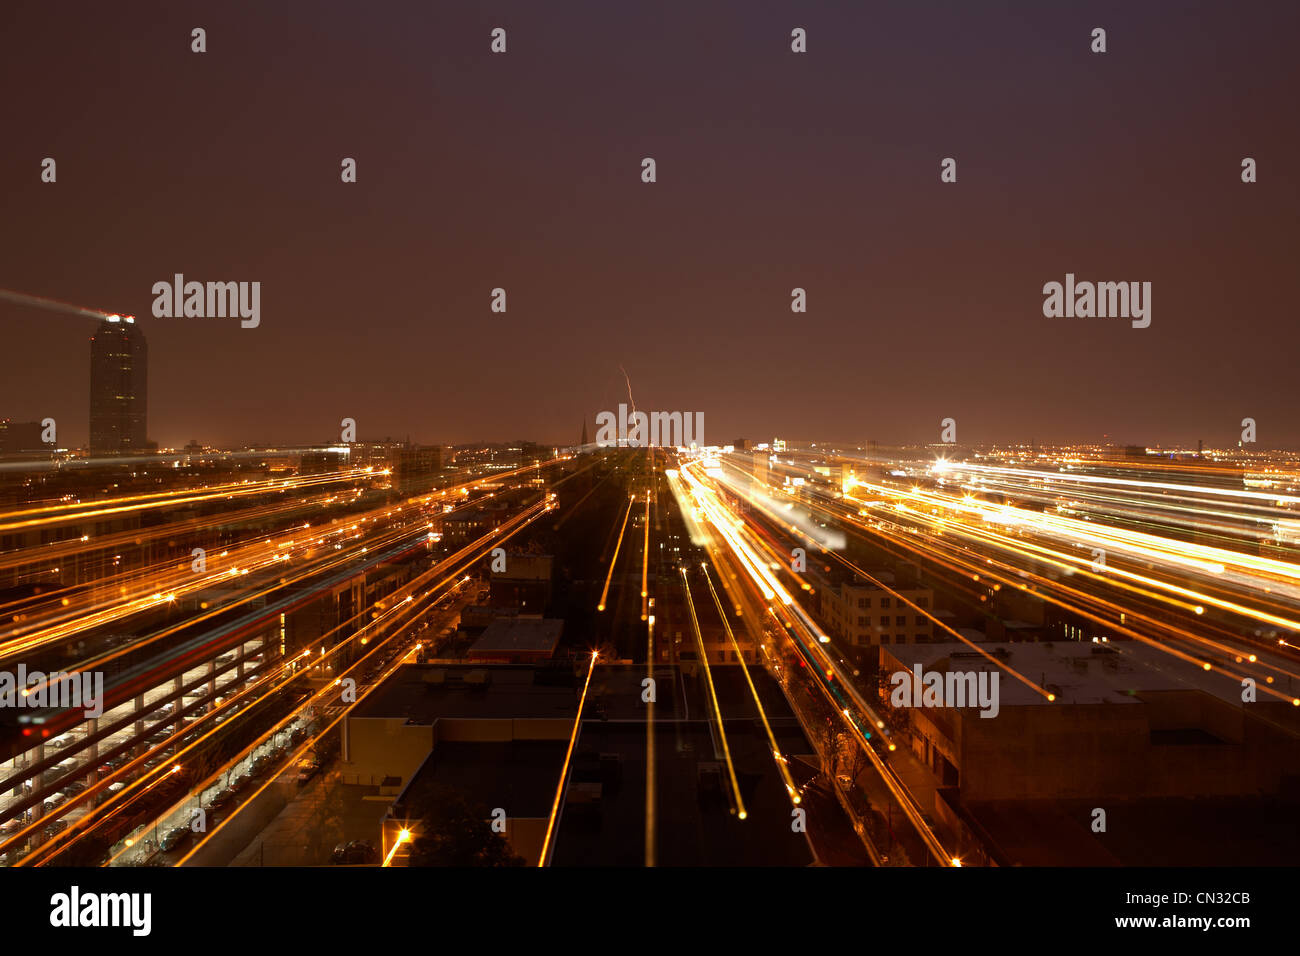 Queens at night, New York City, New York, USA - Stock Image